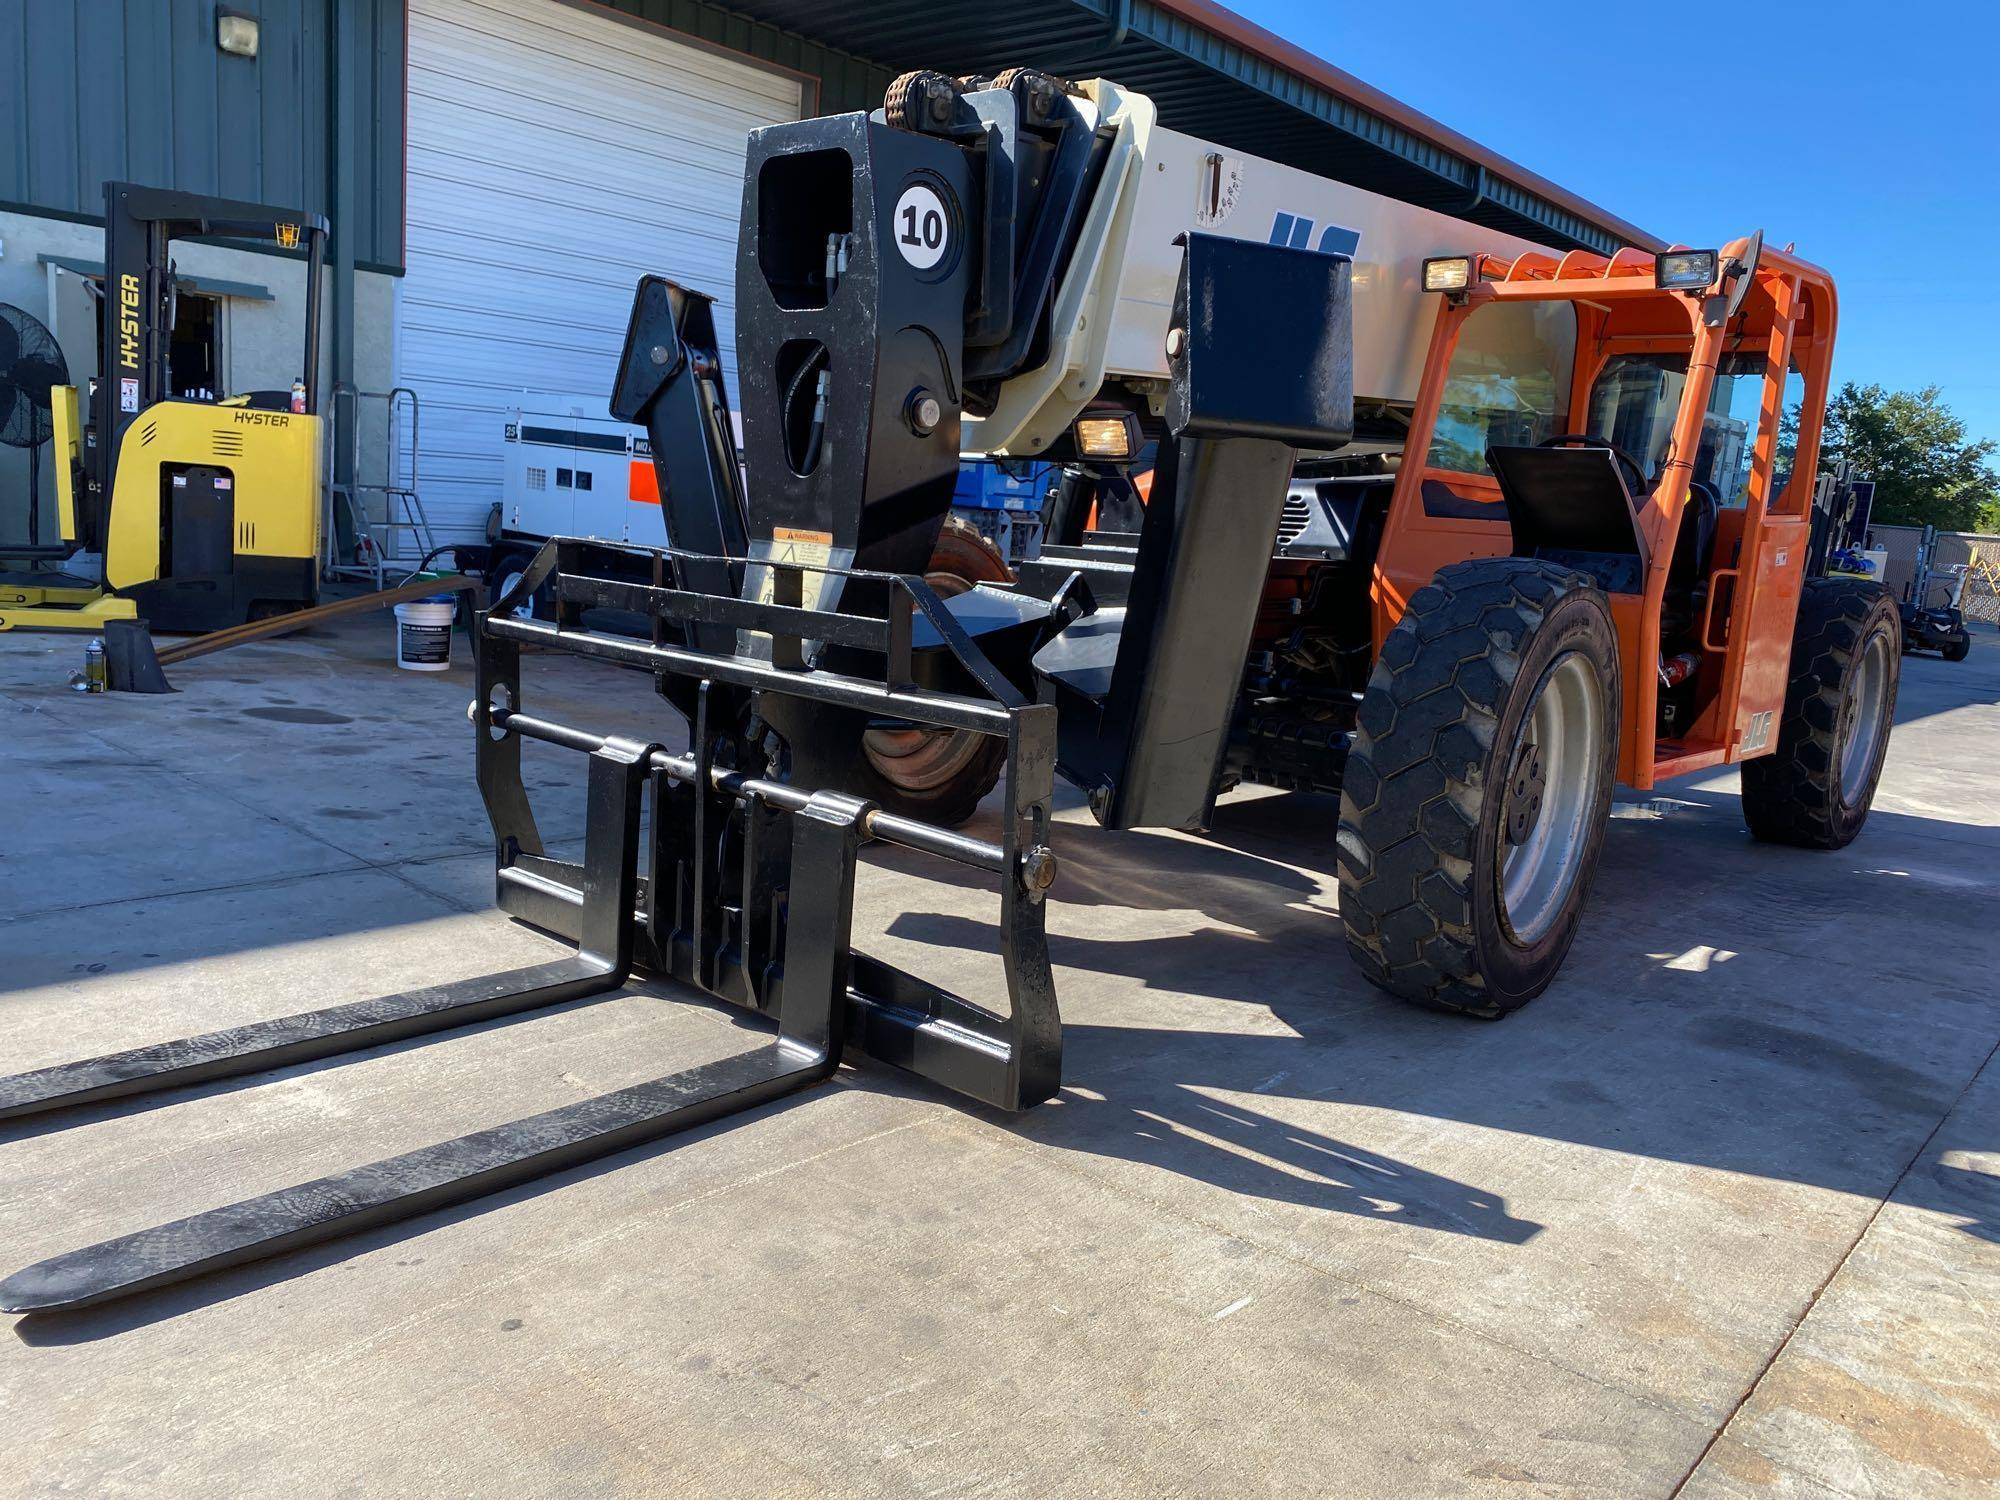 2013 JLG TELESCOPIC FORKLIFT MODEL G10-55A, 10,000 LB CAPACITY, OUTRIGGERS, 5,717.7 HOURS SHOWING, C - Image 8 of 16